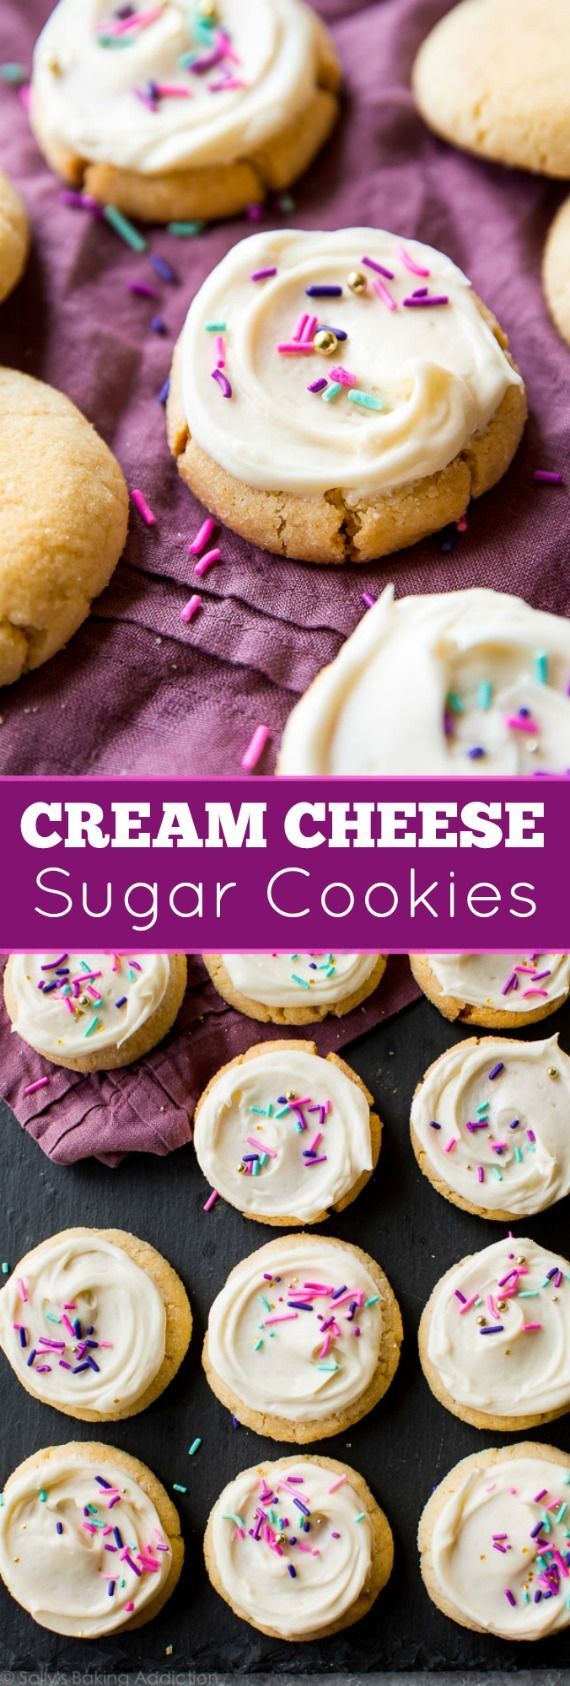 Cream cheese turns good sugar cookies into GREAT sugar cookies! Soft, tender, chewy, with incredible flavor! Recipe on sallysbakingaddiction.com